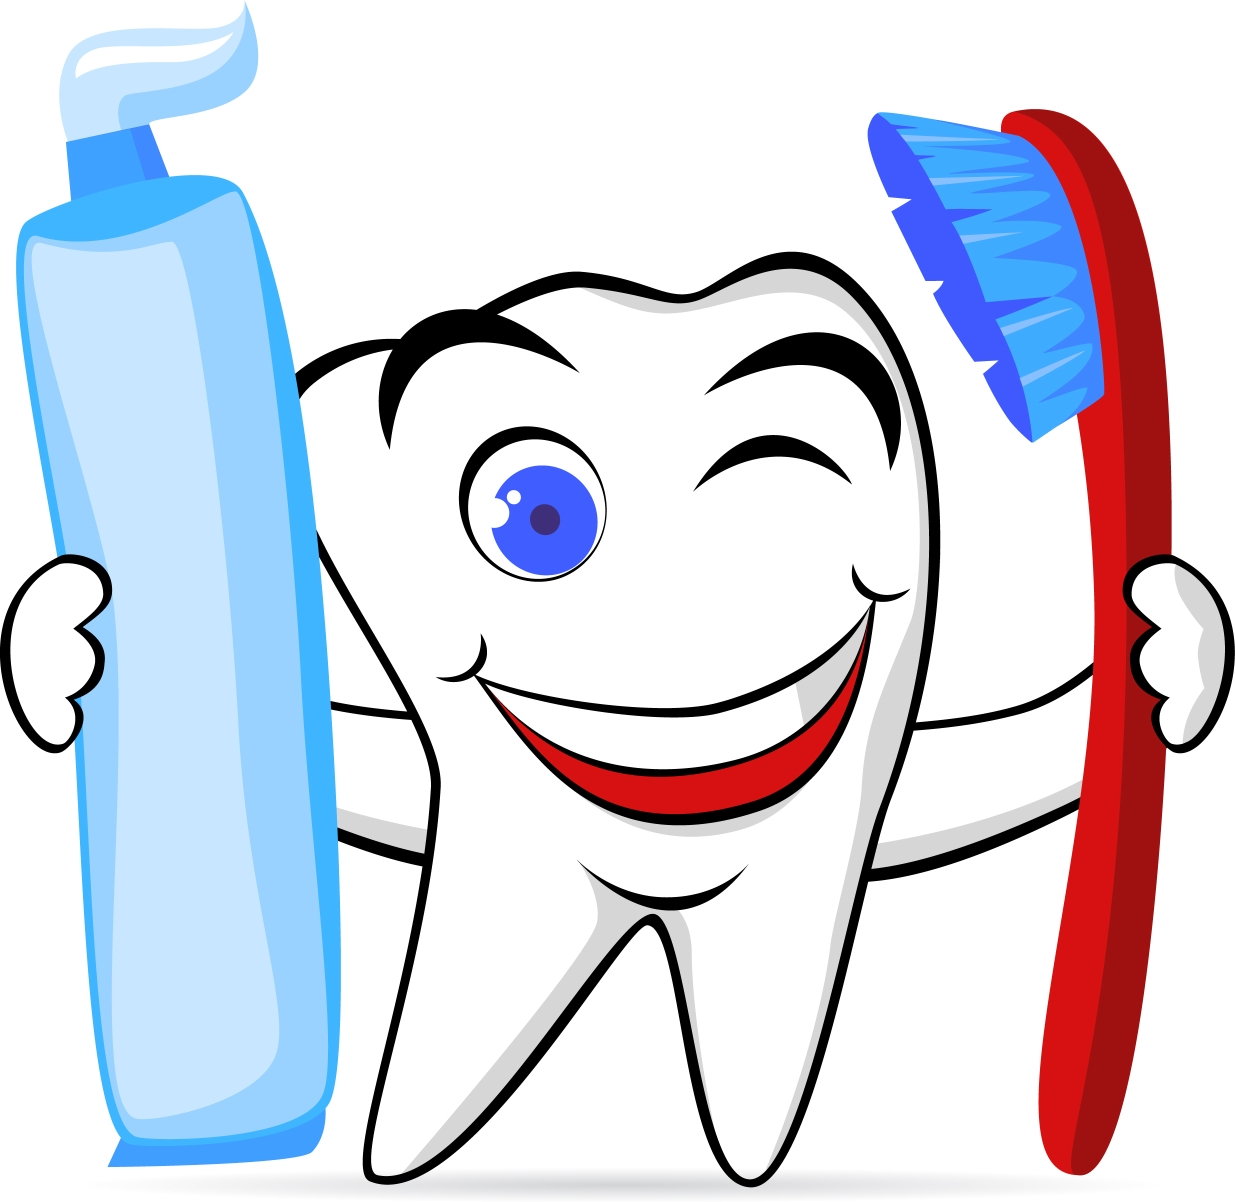 Free dental pictures clipartix. Dentist clipart brushed tooth